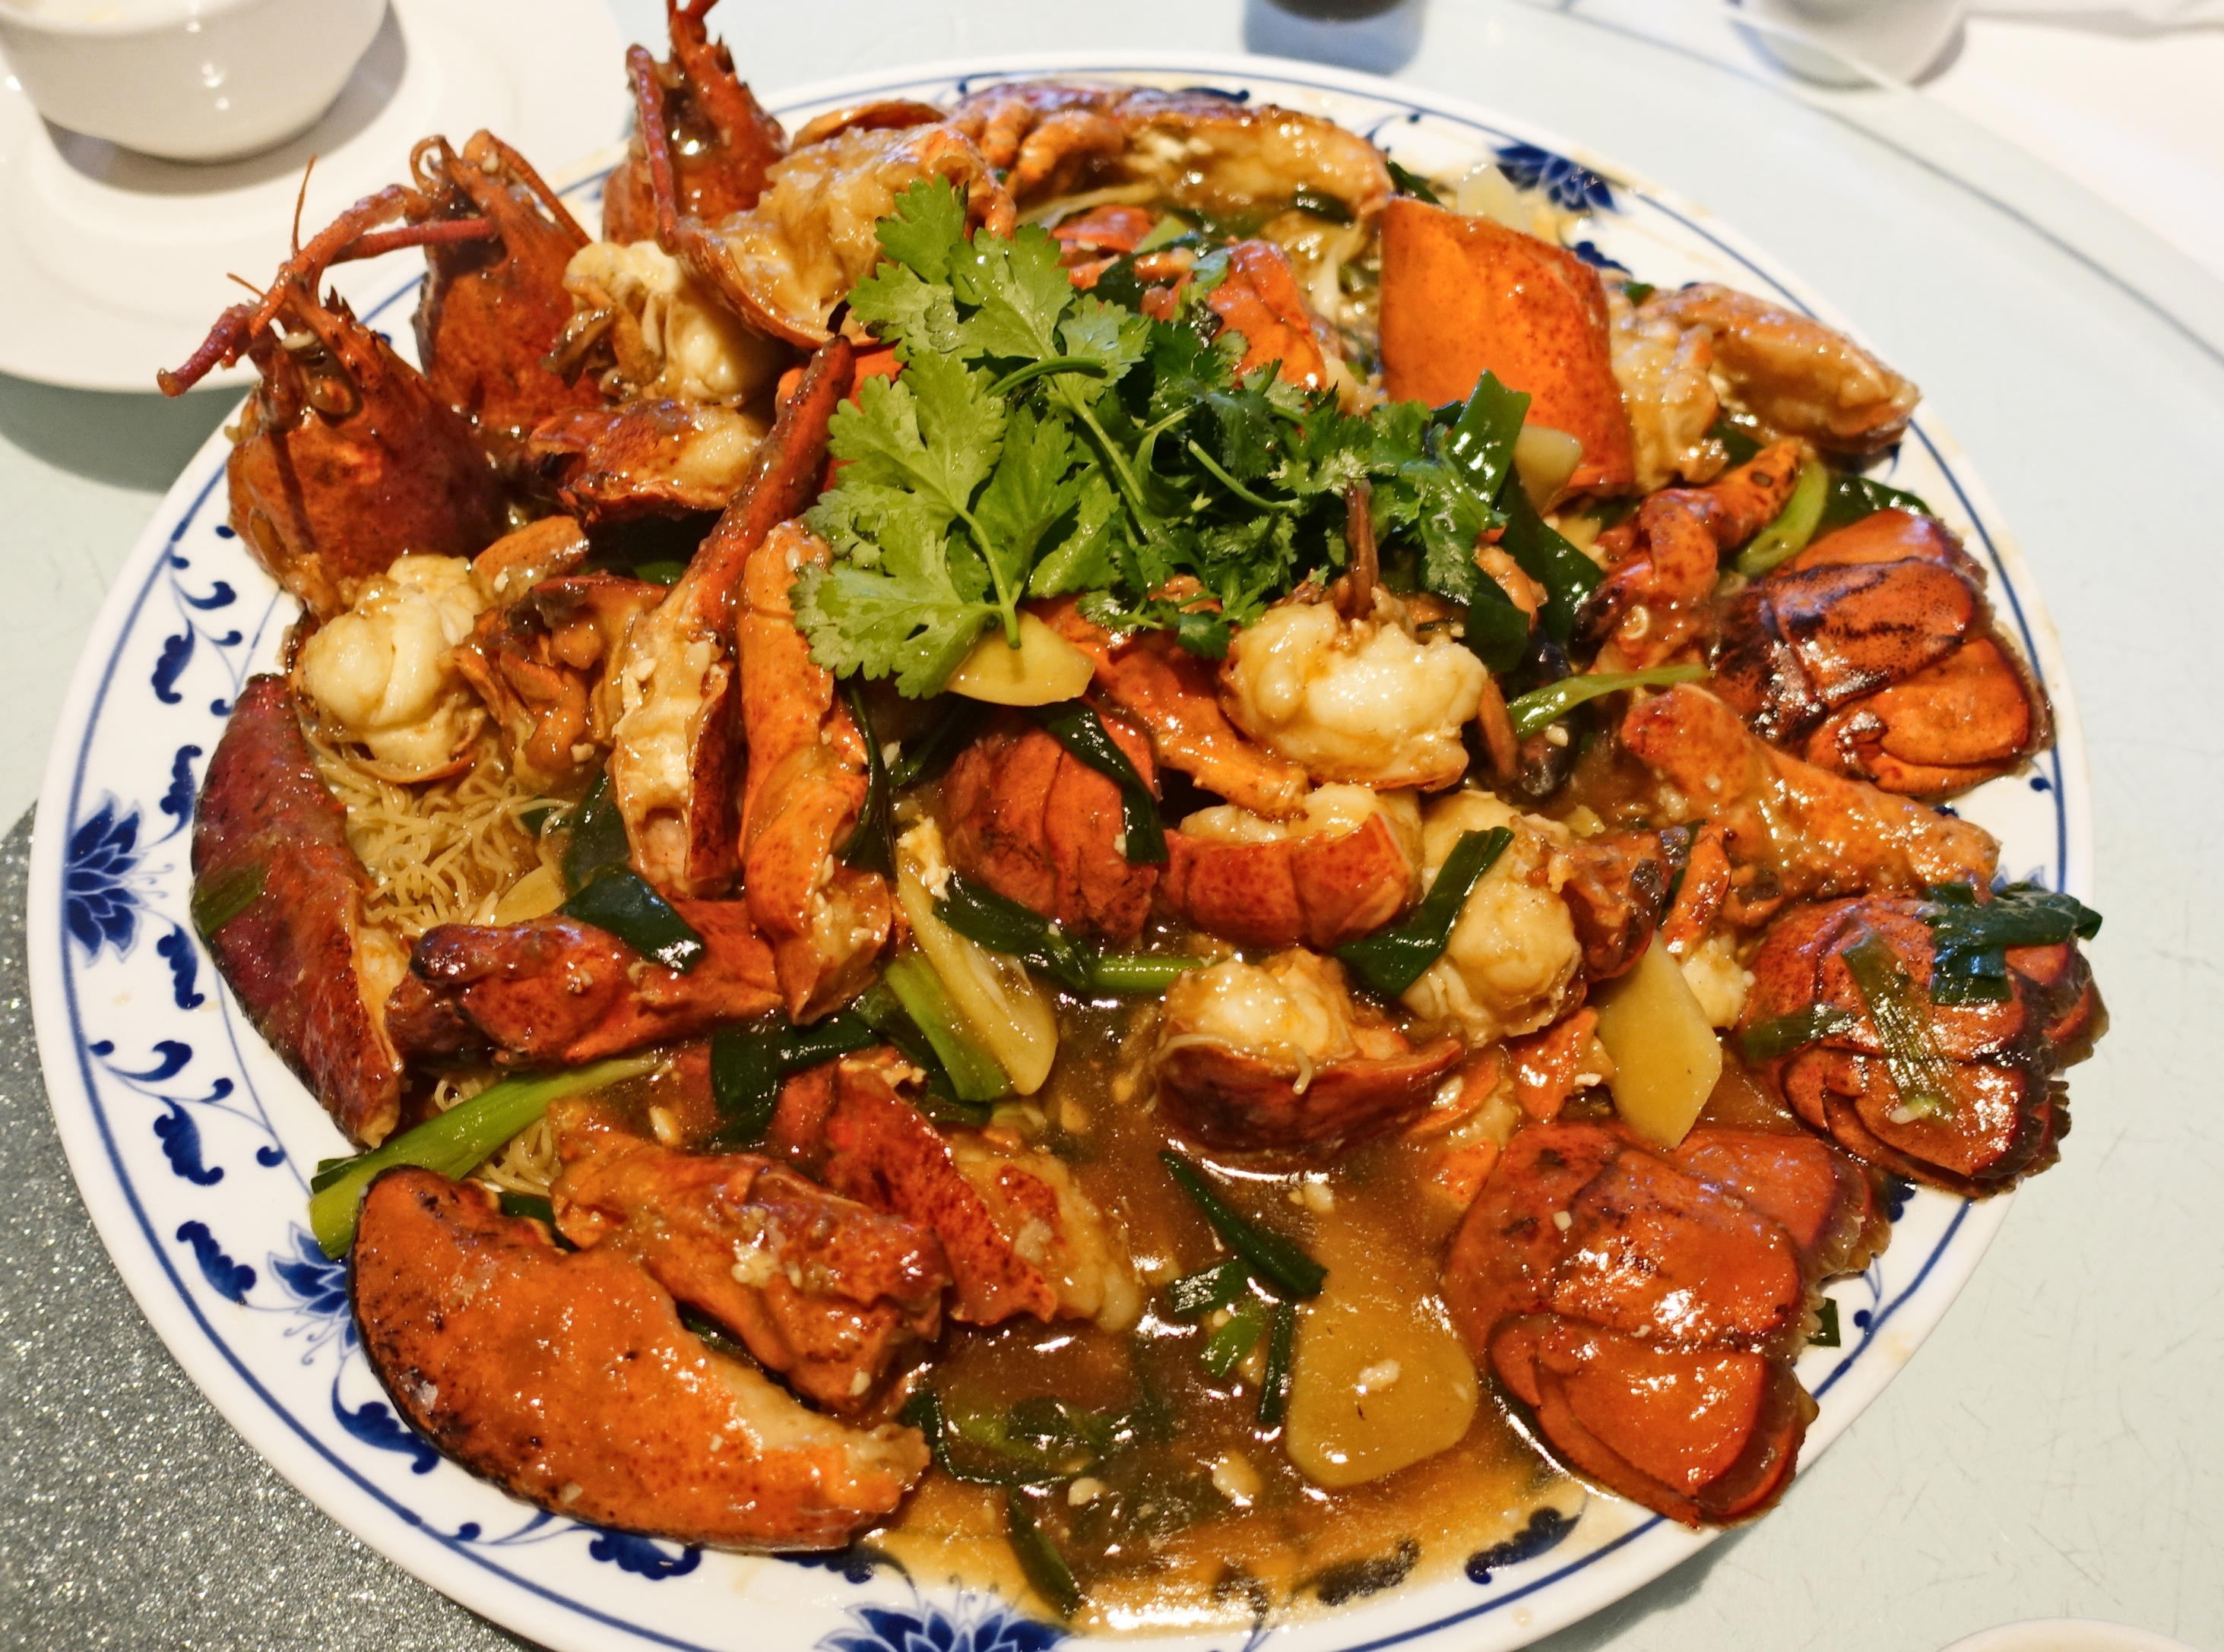 London Lobster Noodles At The Mandarin Kitchen Queensway